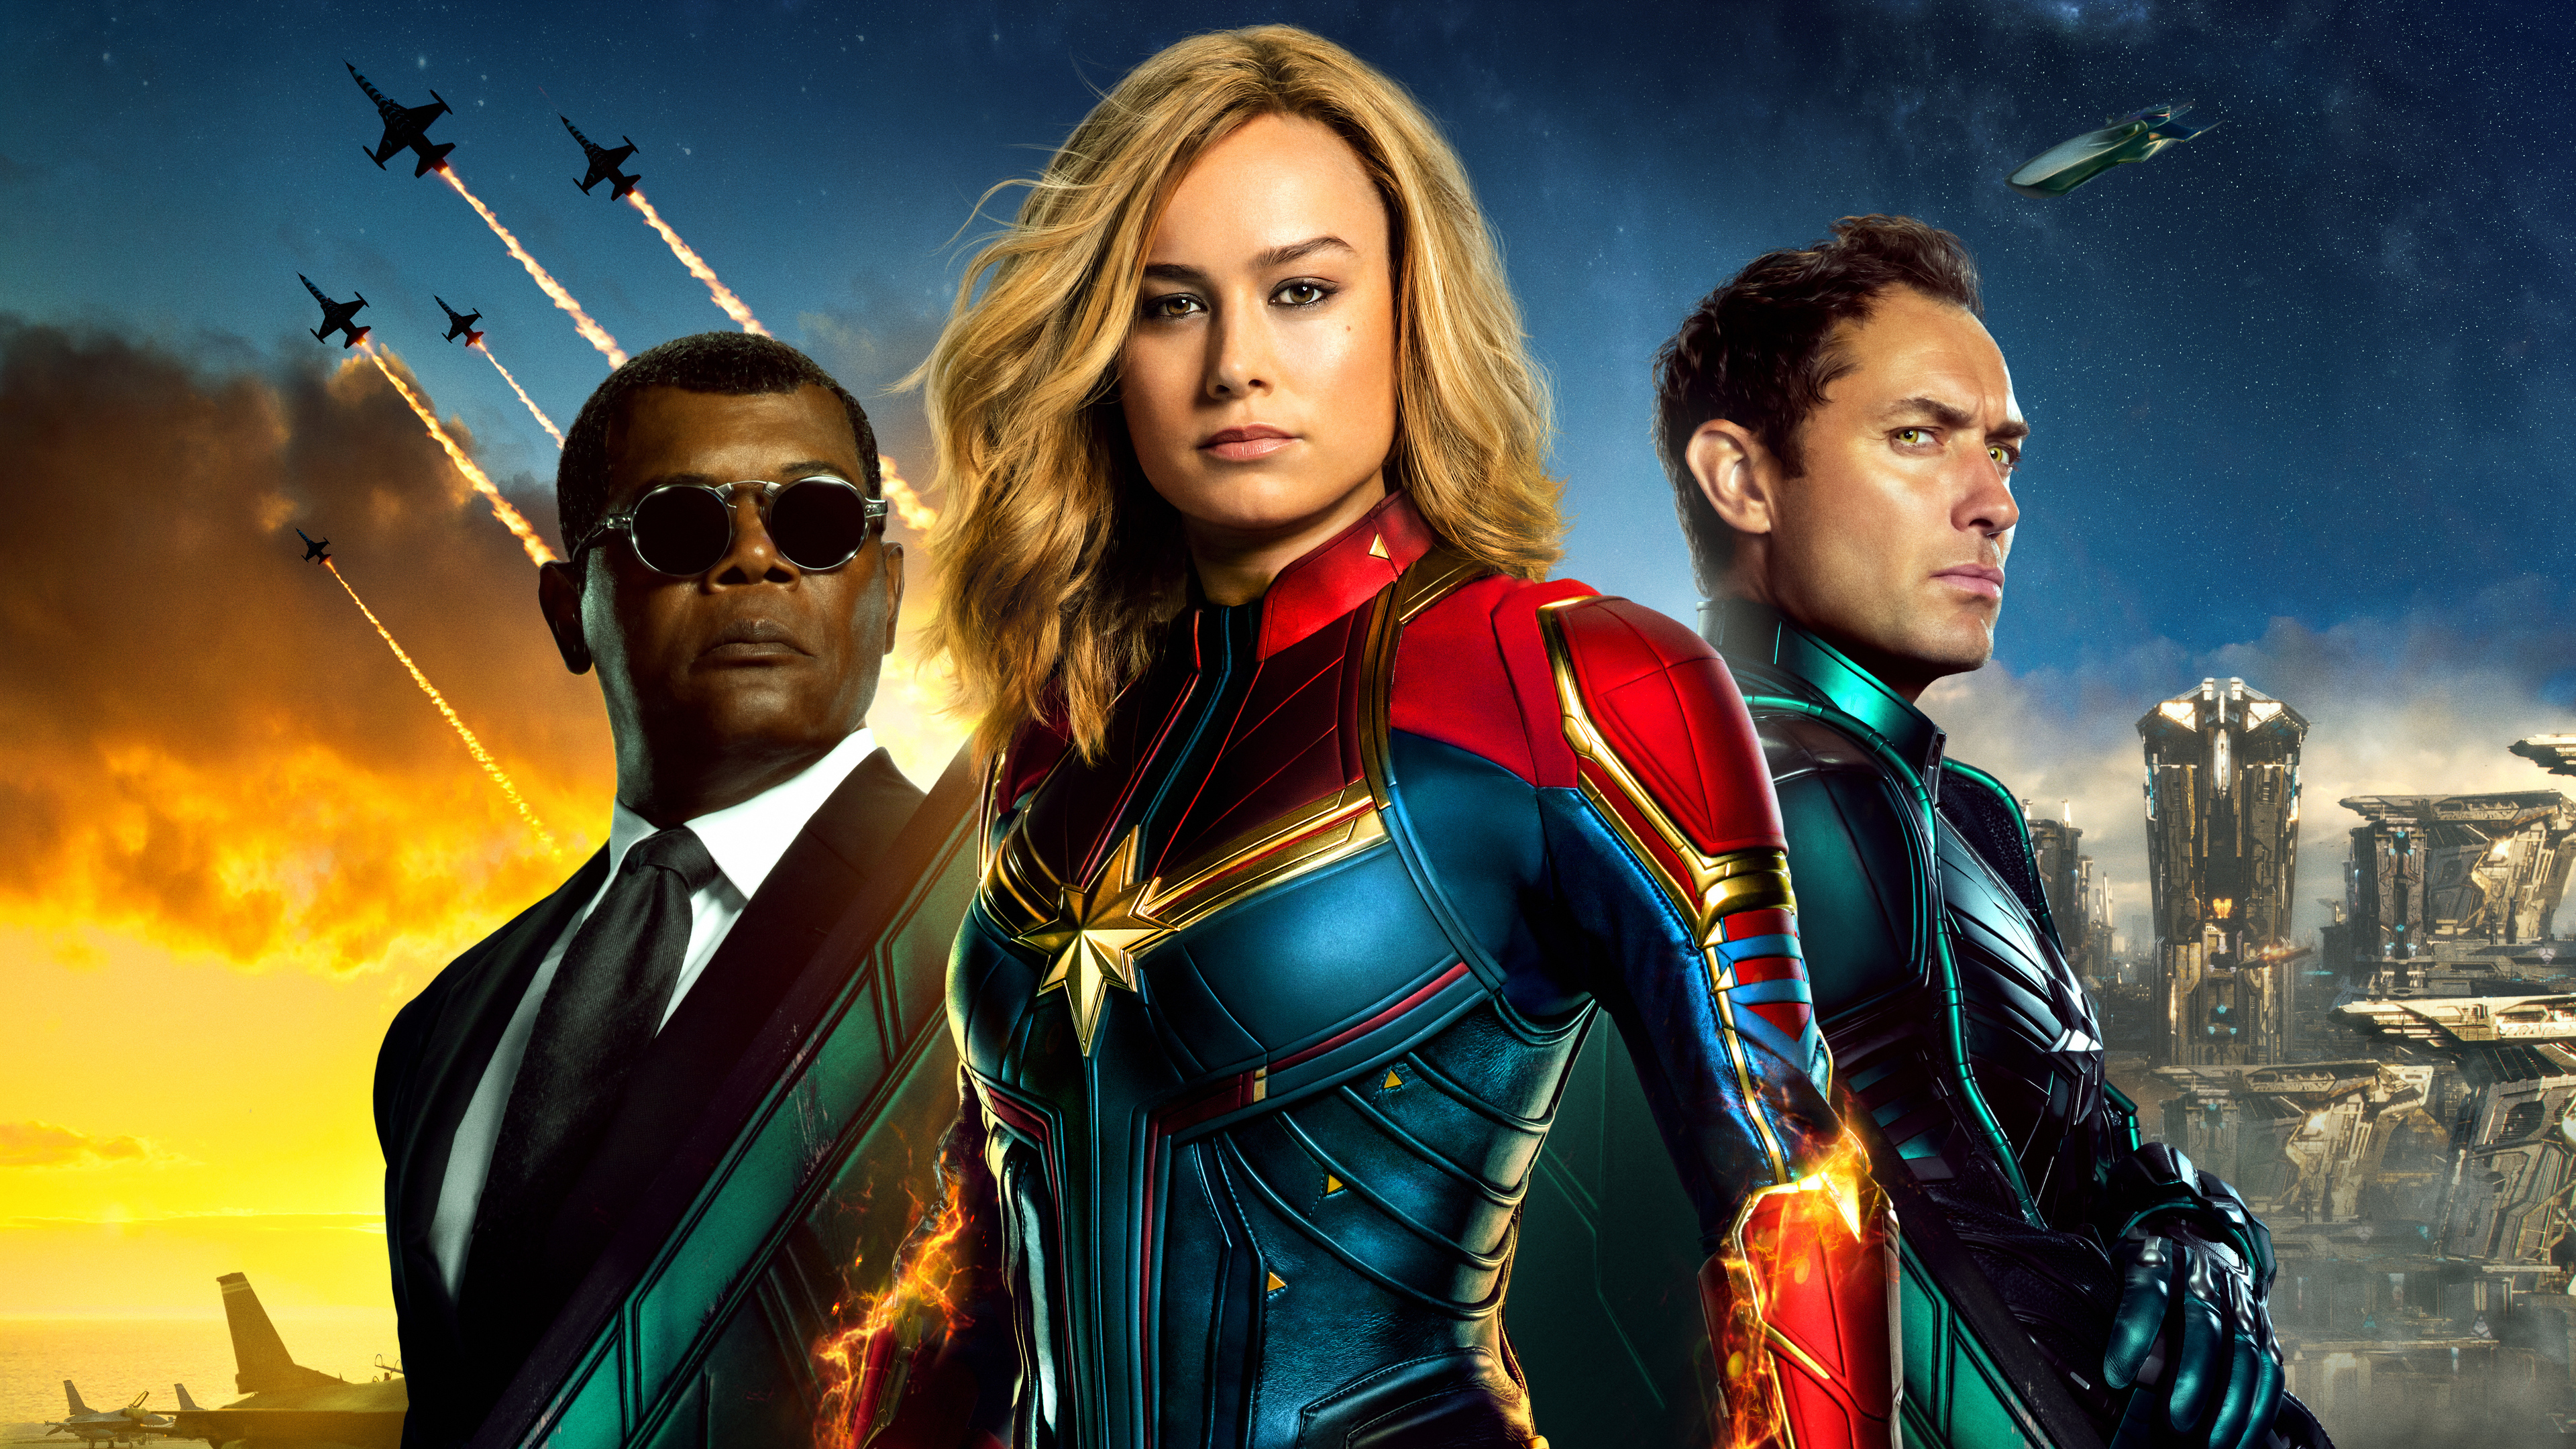 captain marvel new poster 4k 1550513648 - Captain Marvel New Poster 4k - poster wallpapers, movies wallpapers, hd-wallpapers, carol danvers wallpapers, captain marvel wallpapers, captain marvel movie wallpapers, brie larson wallpapers, 5k wallpapers, 4k-wallpapers, 2019 movies wallpapers